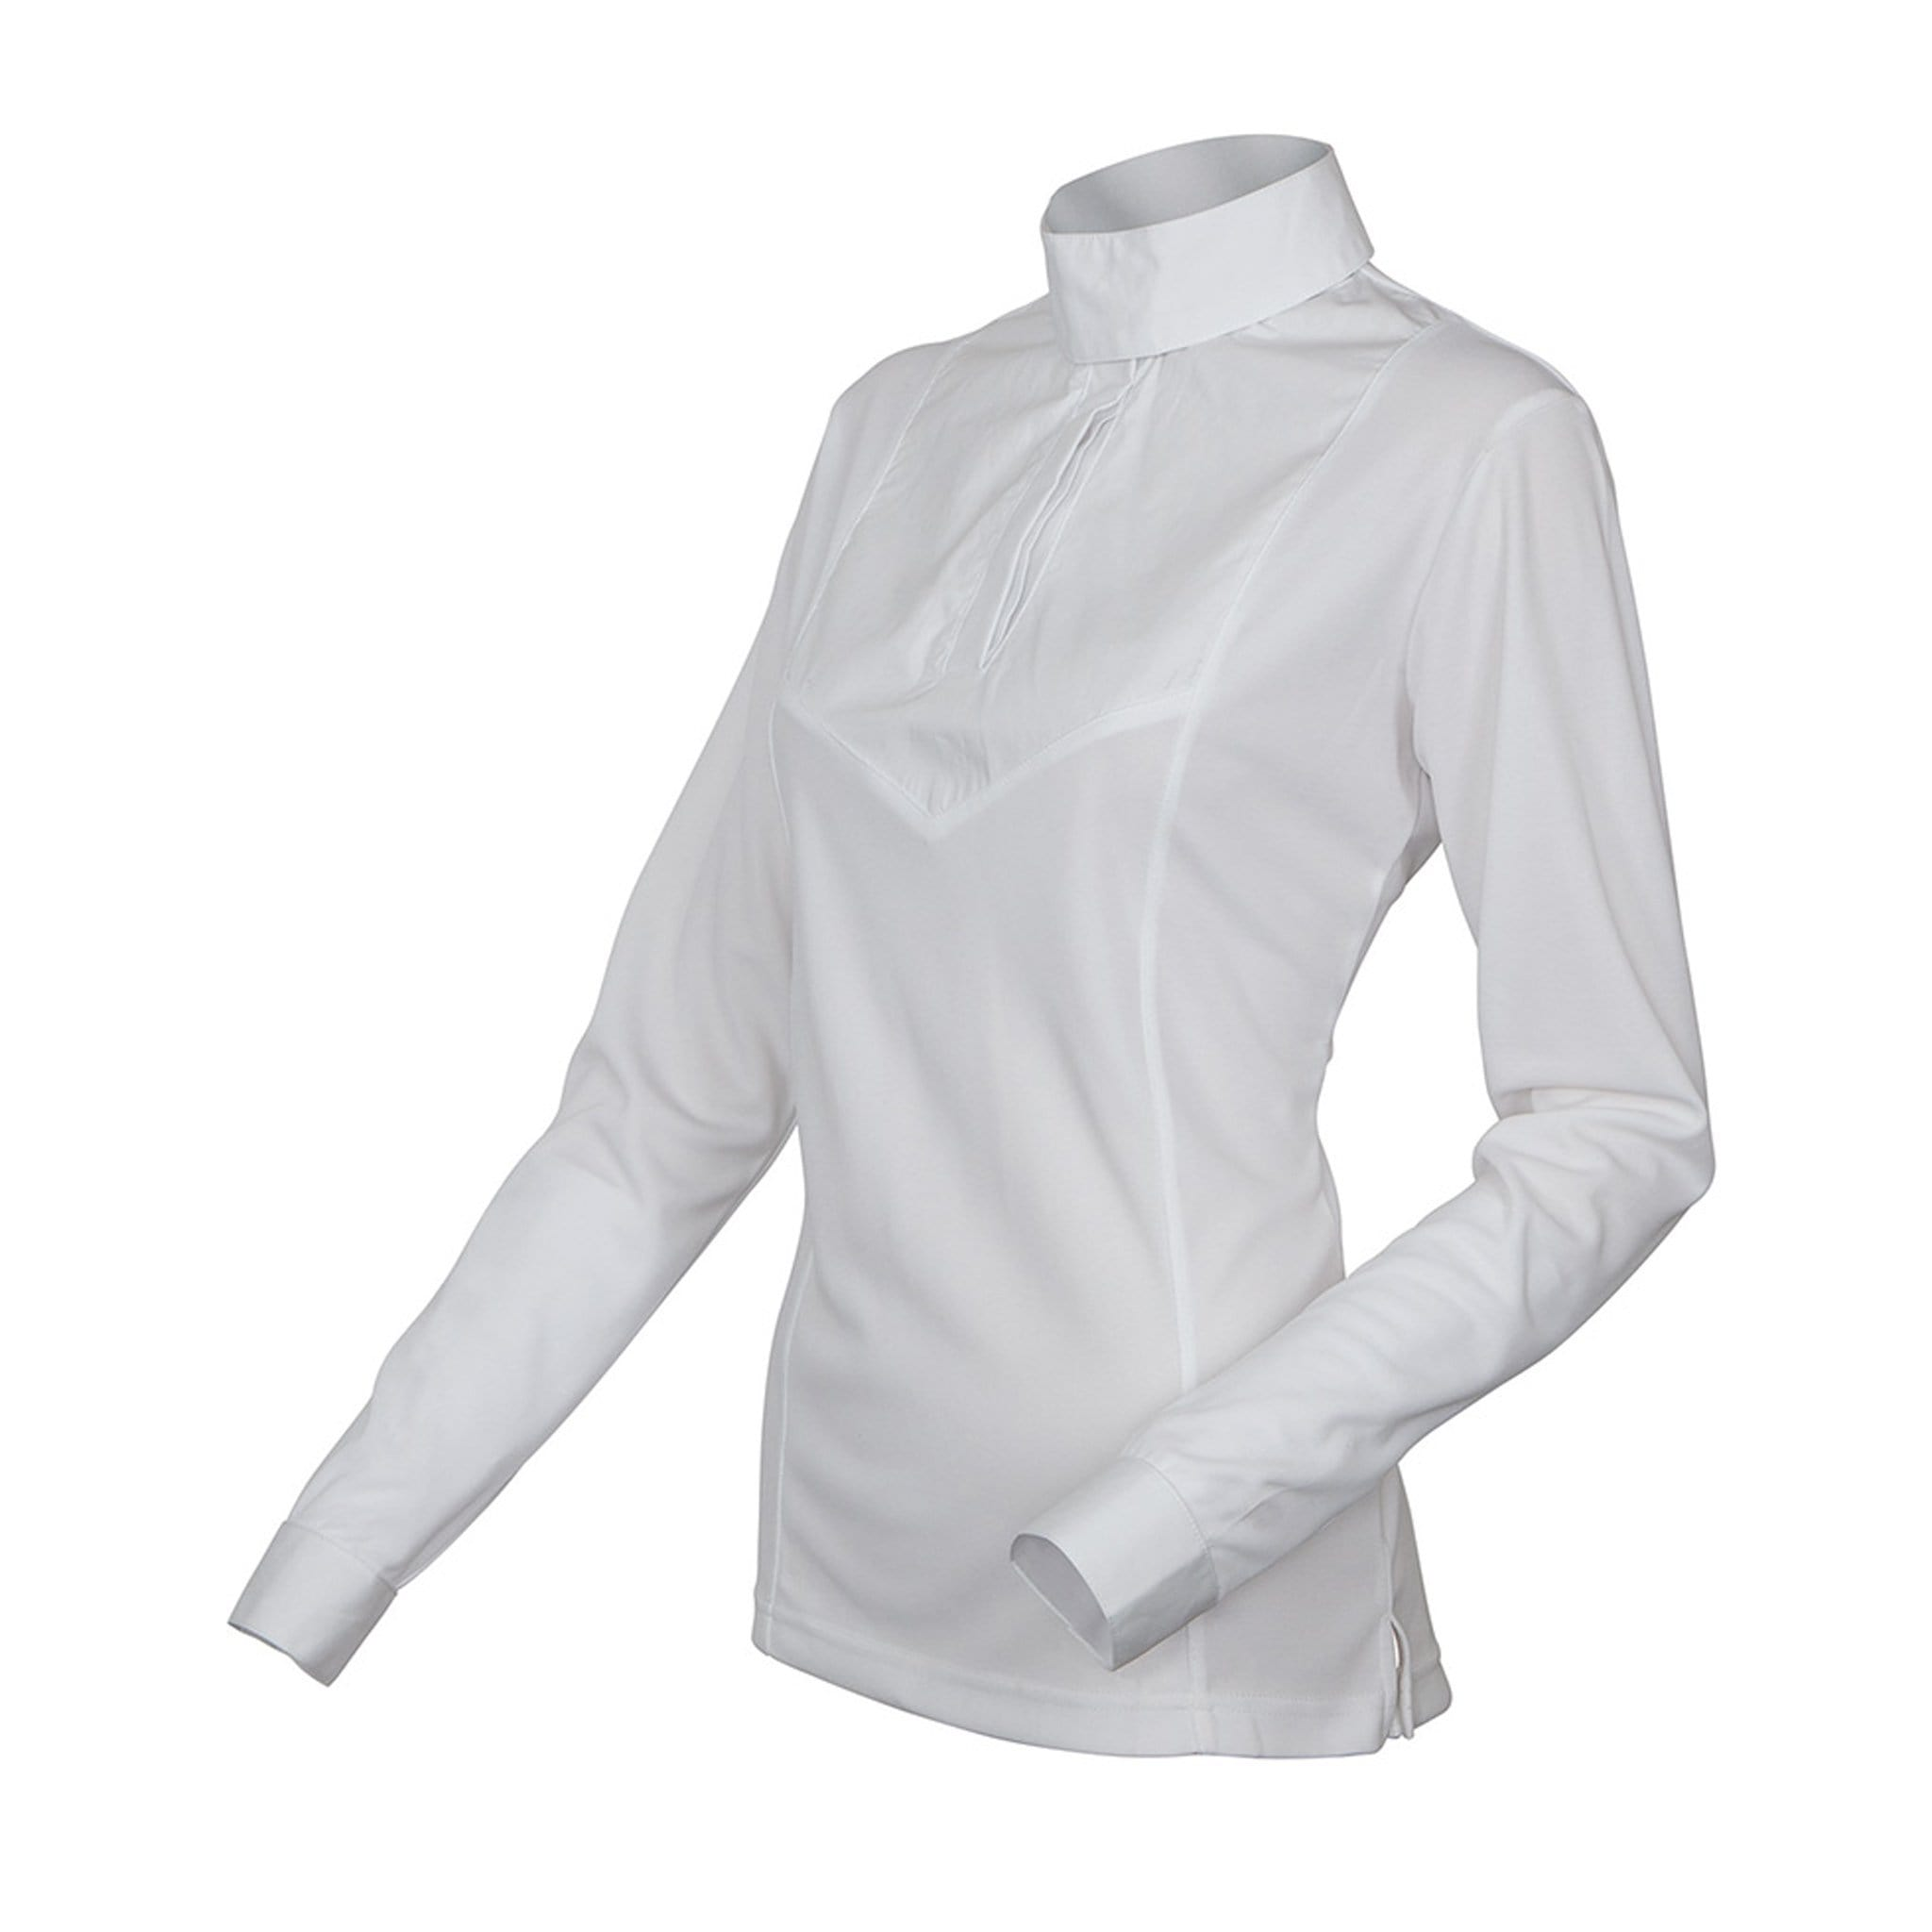 Shires Stock Long Sleeve Show Shirt White Studio 9996